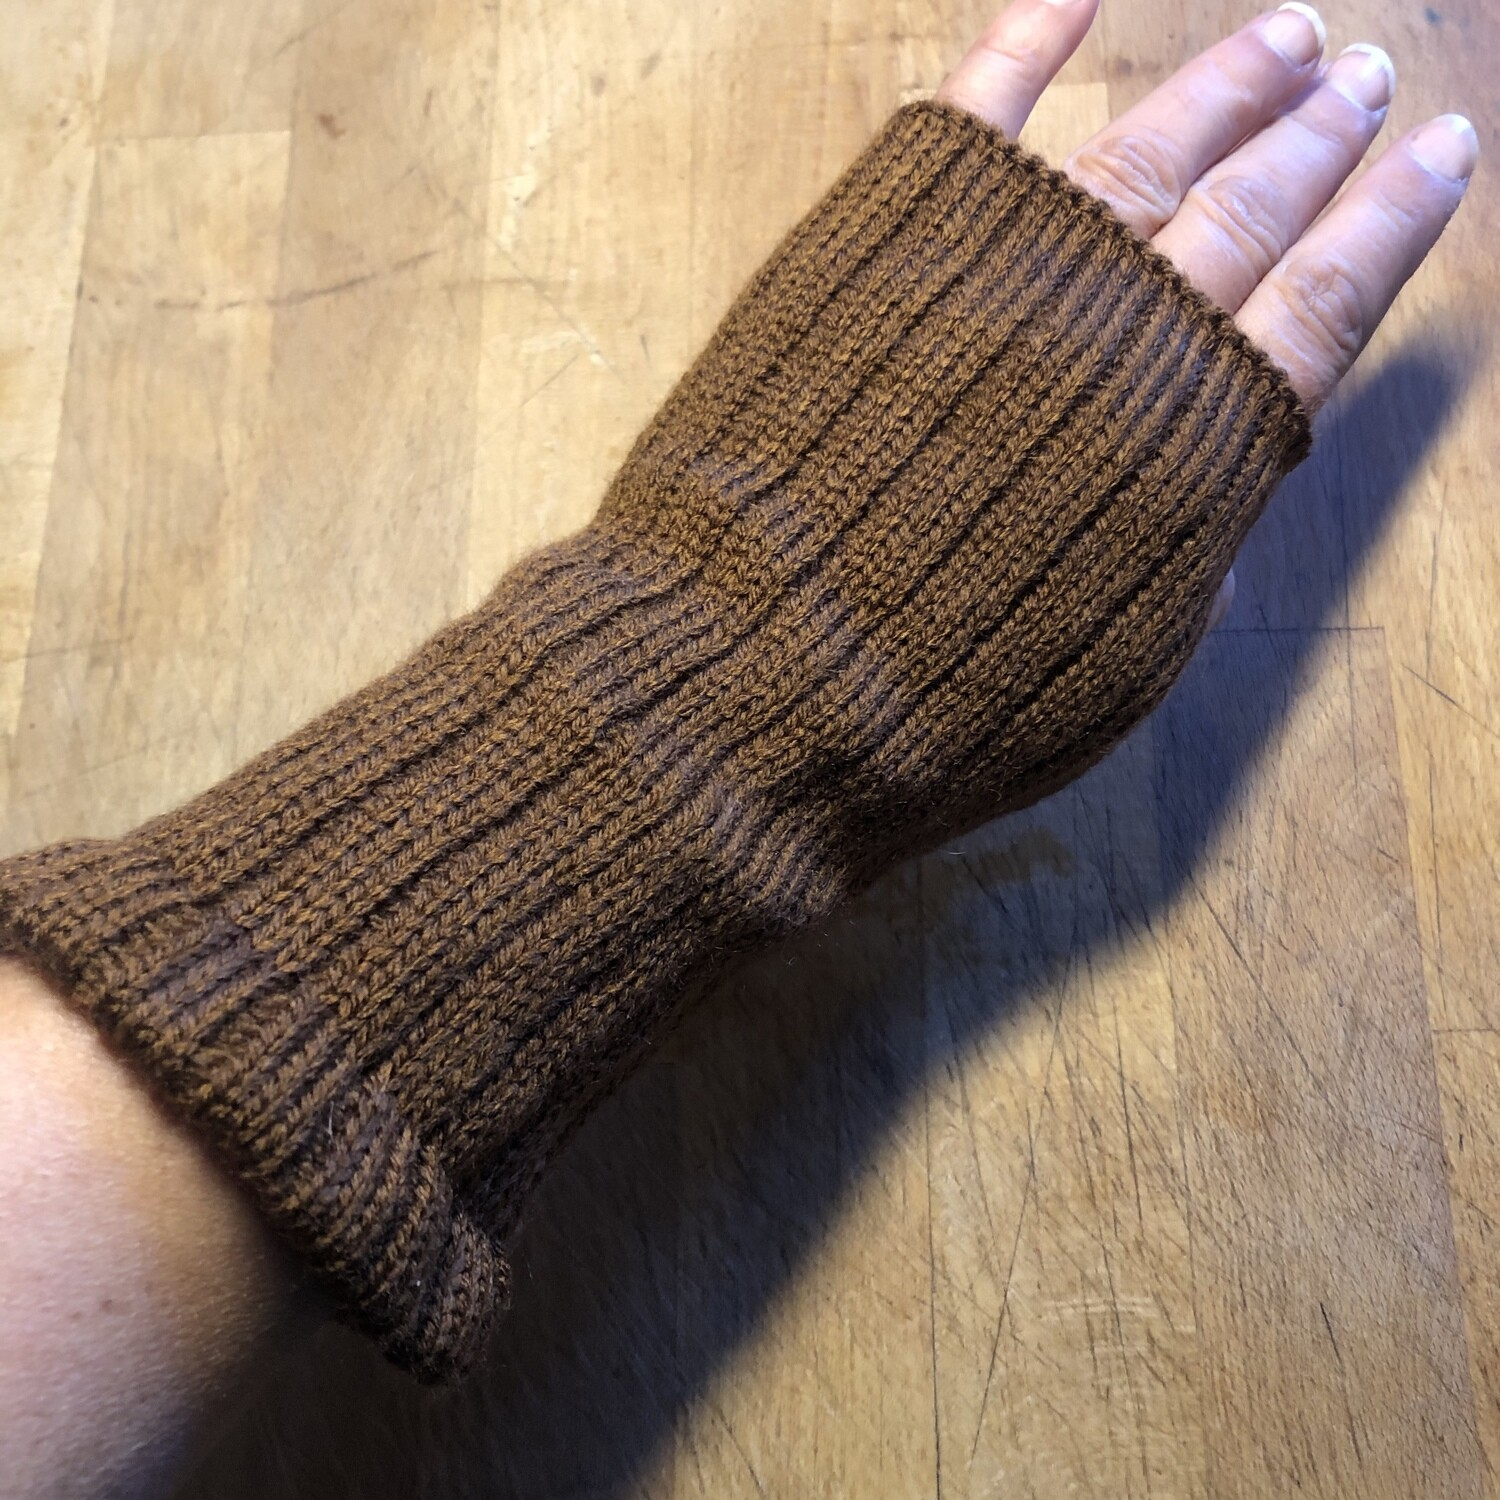 Fingerless Mitts - Solid Brown - medium length